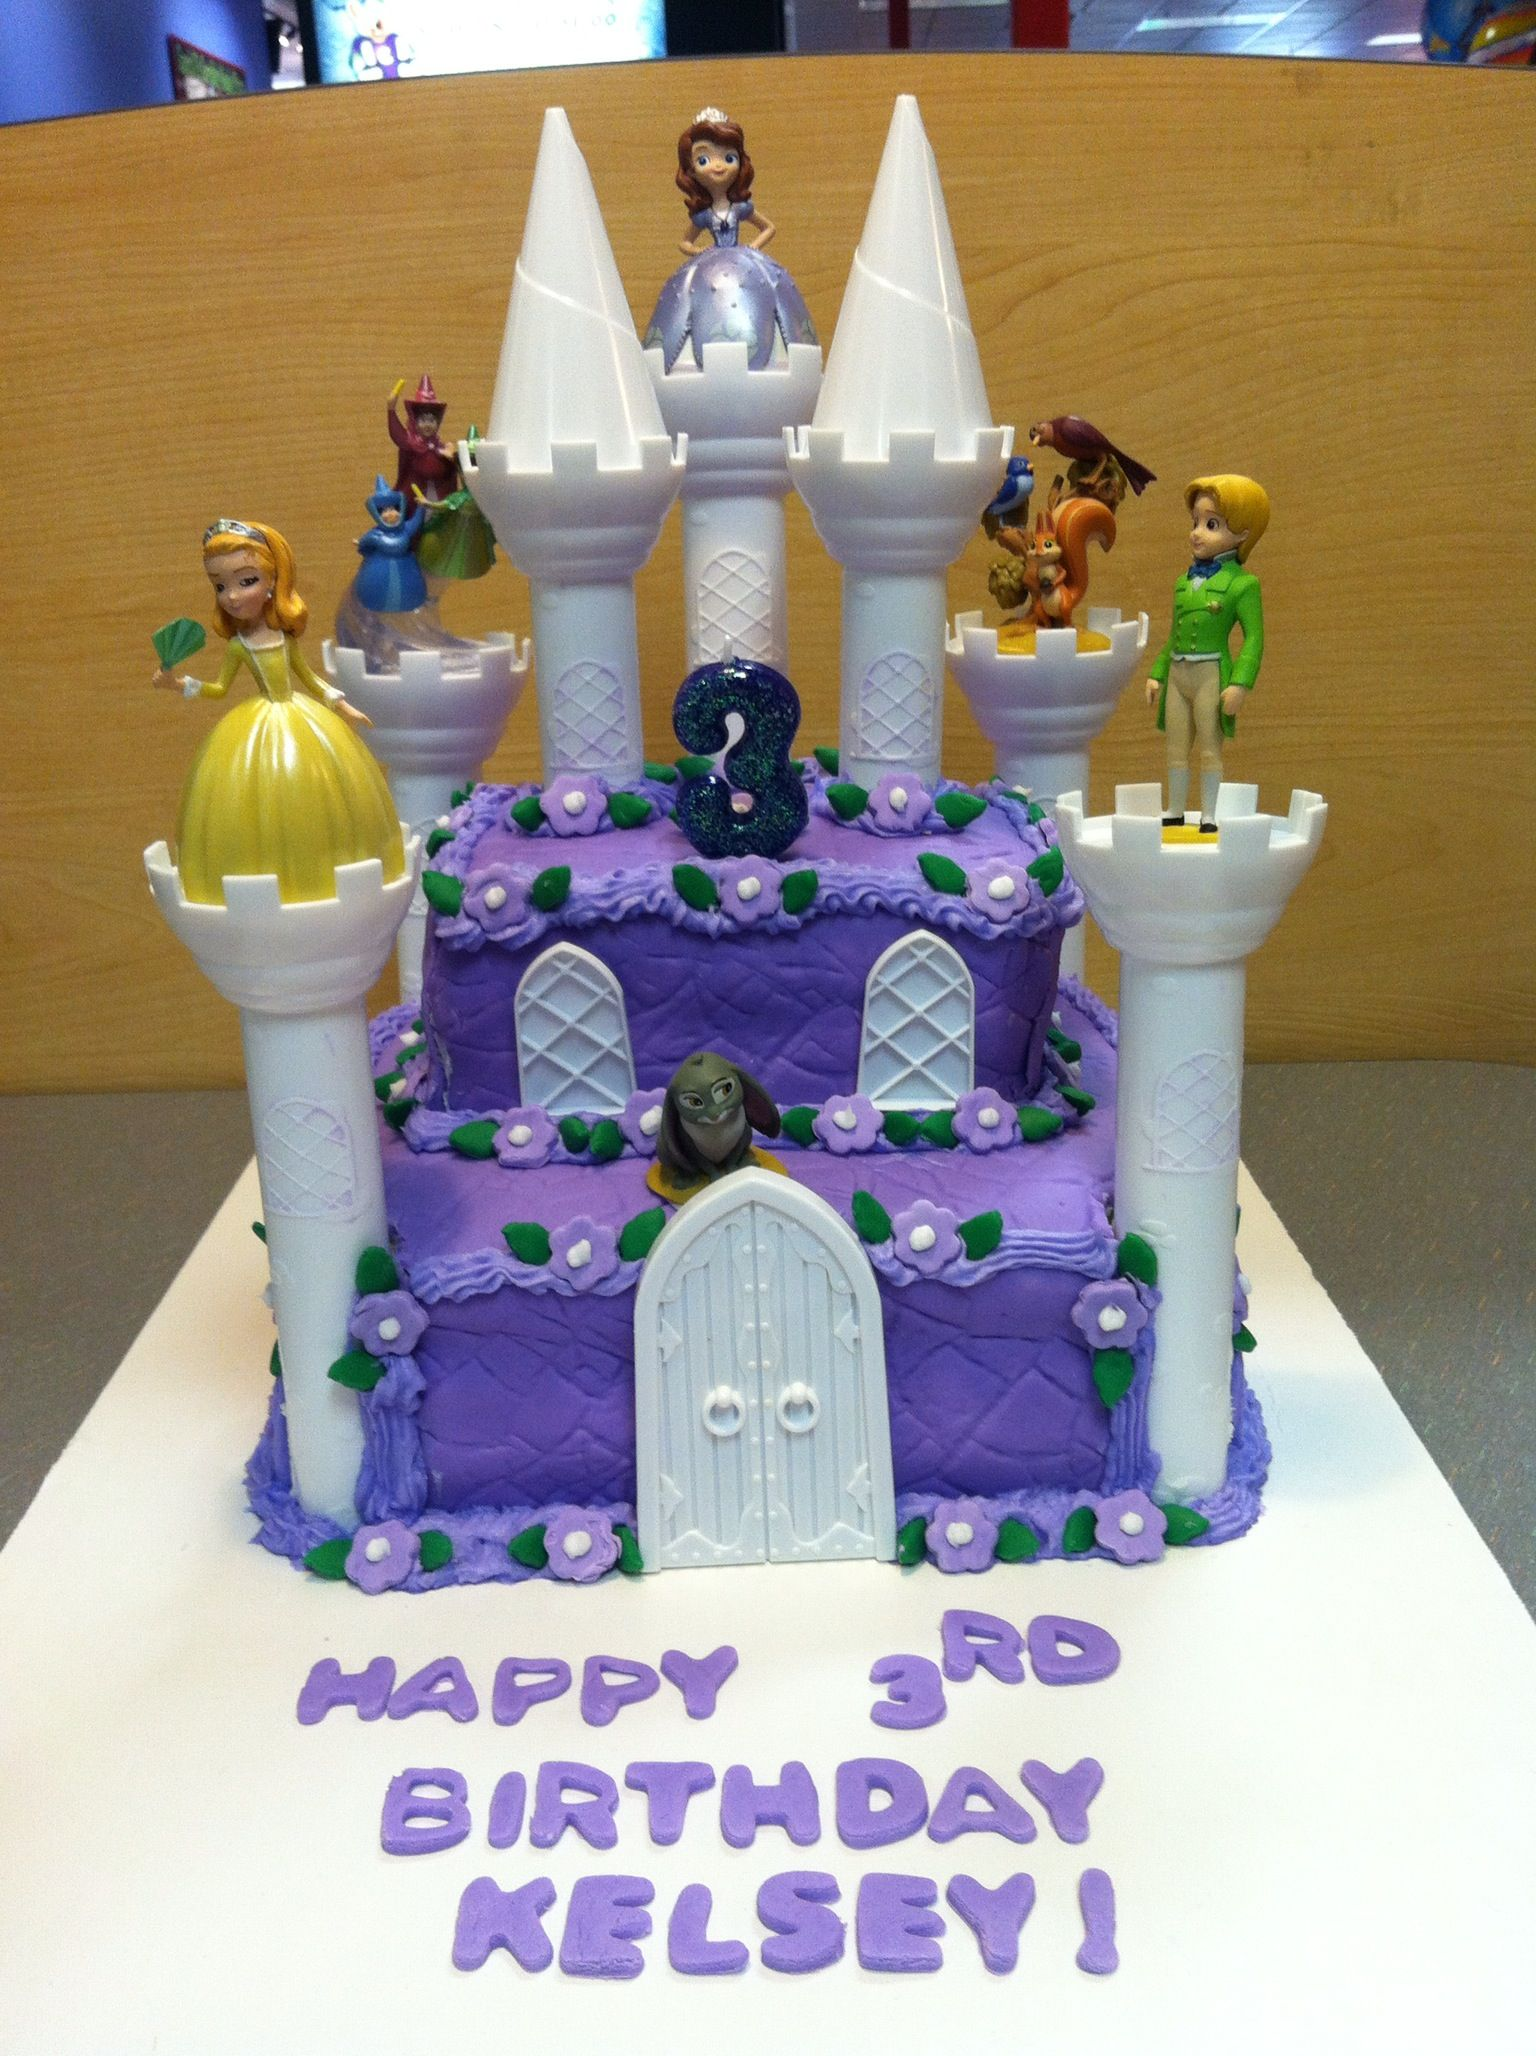 sophia the first castle cake! kelsey's 3rd birthday! madeher